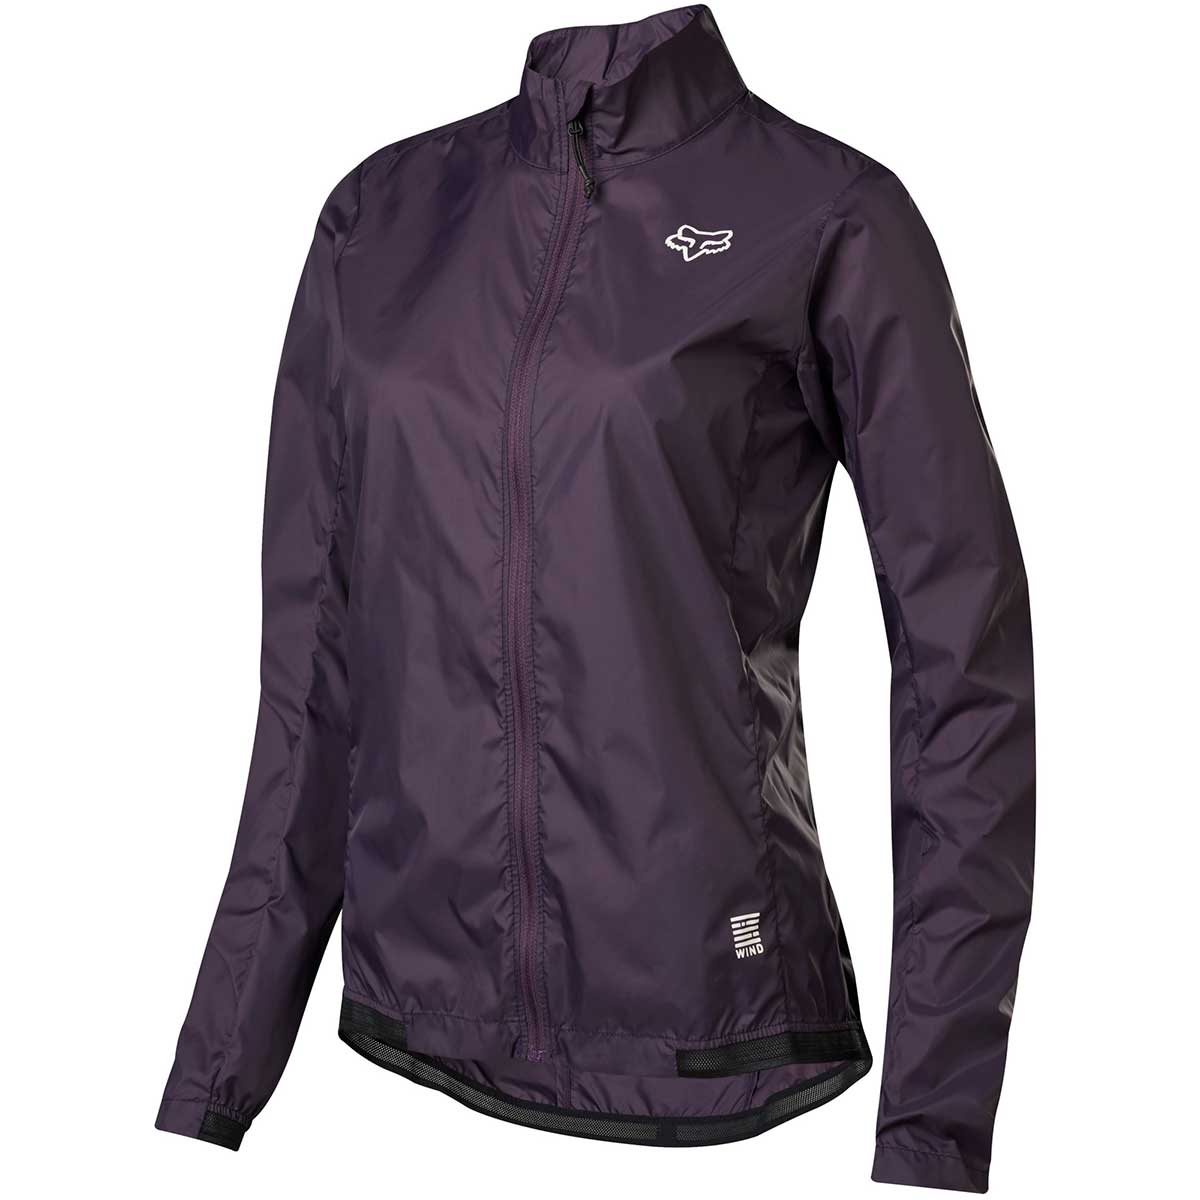 Fox women's Defend Wind Jacket in Dark Purple